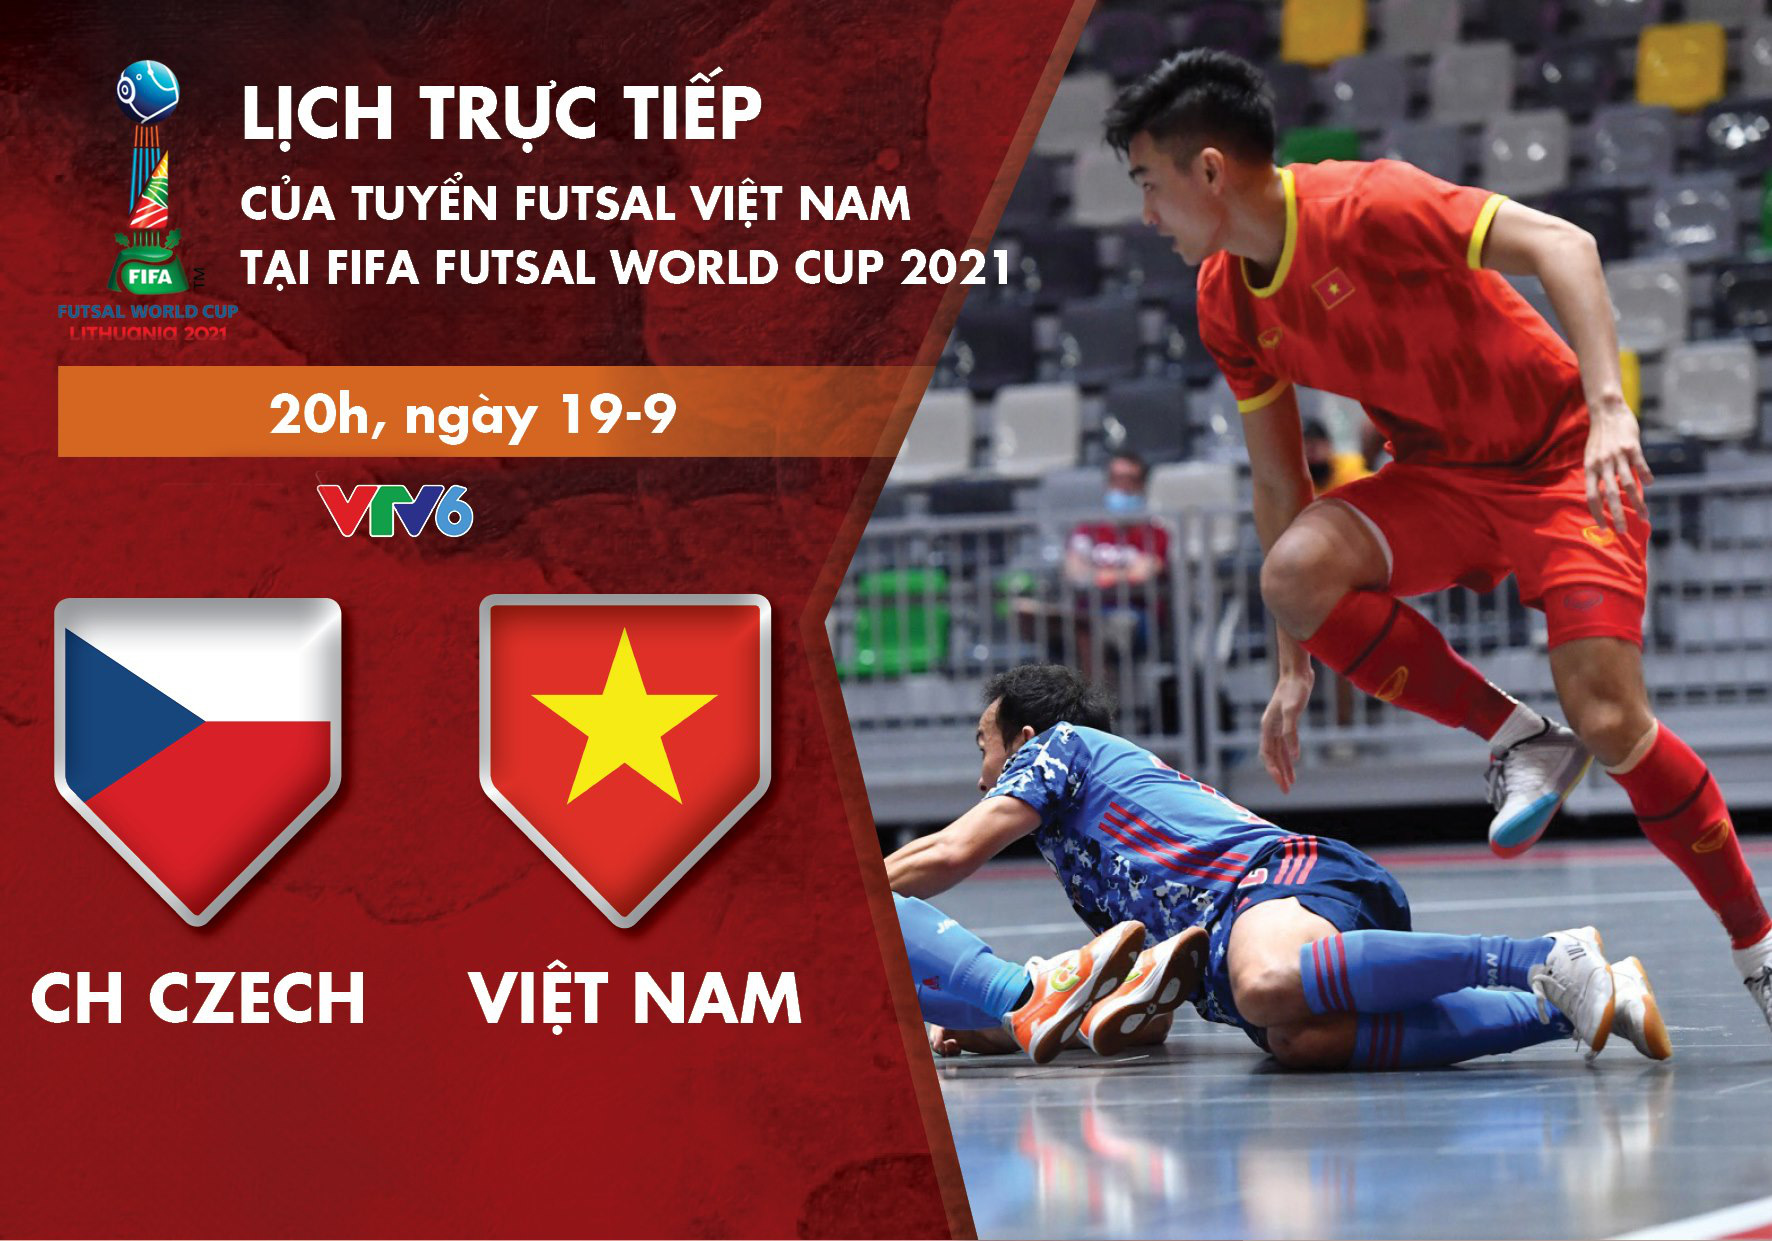 Vietnam to face Czech Republic in last group-stage game at FIFA Futsal World Cup